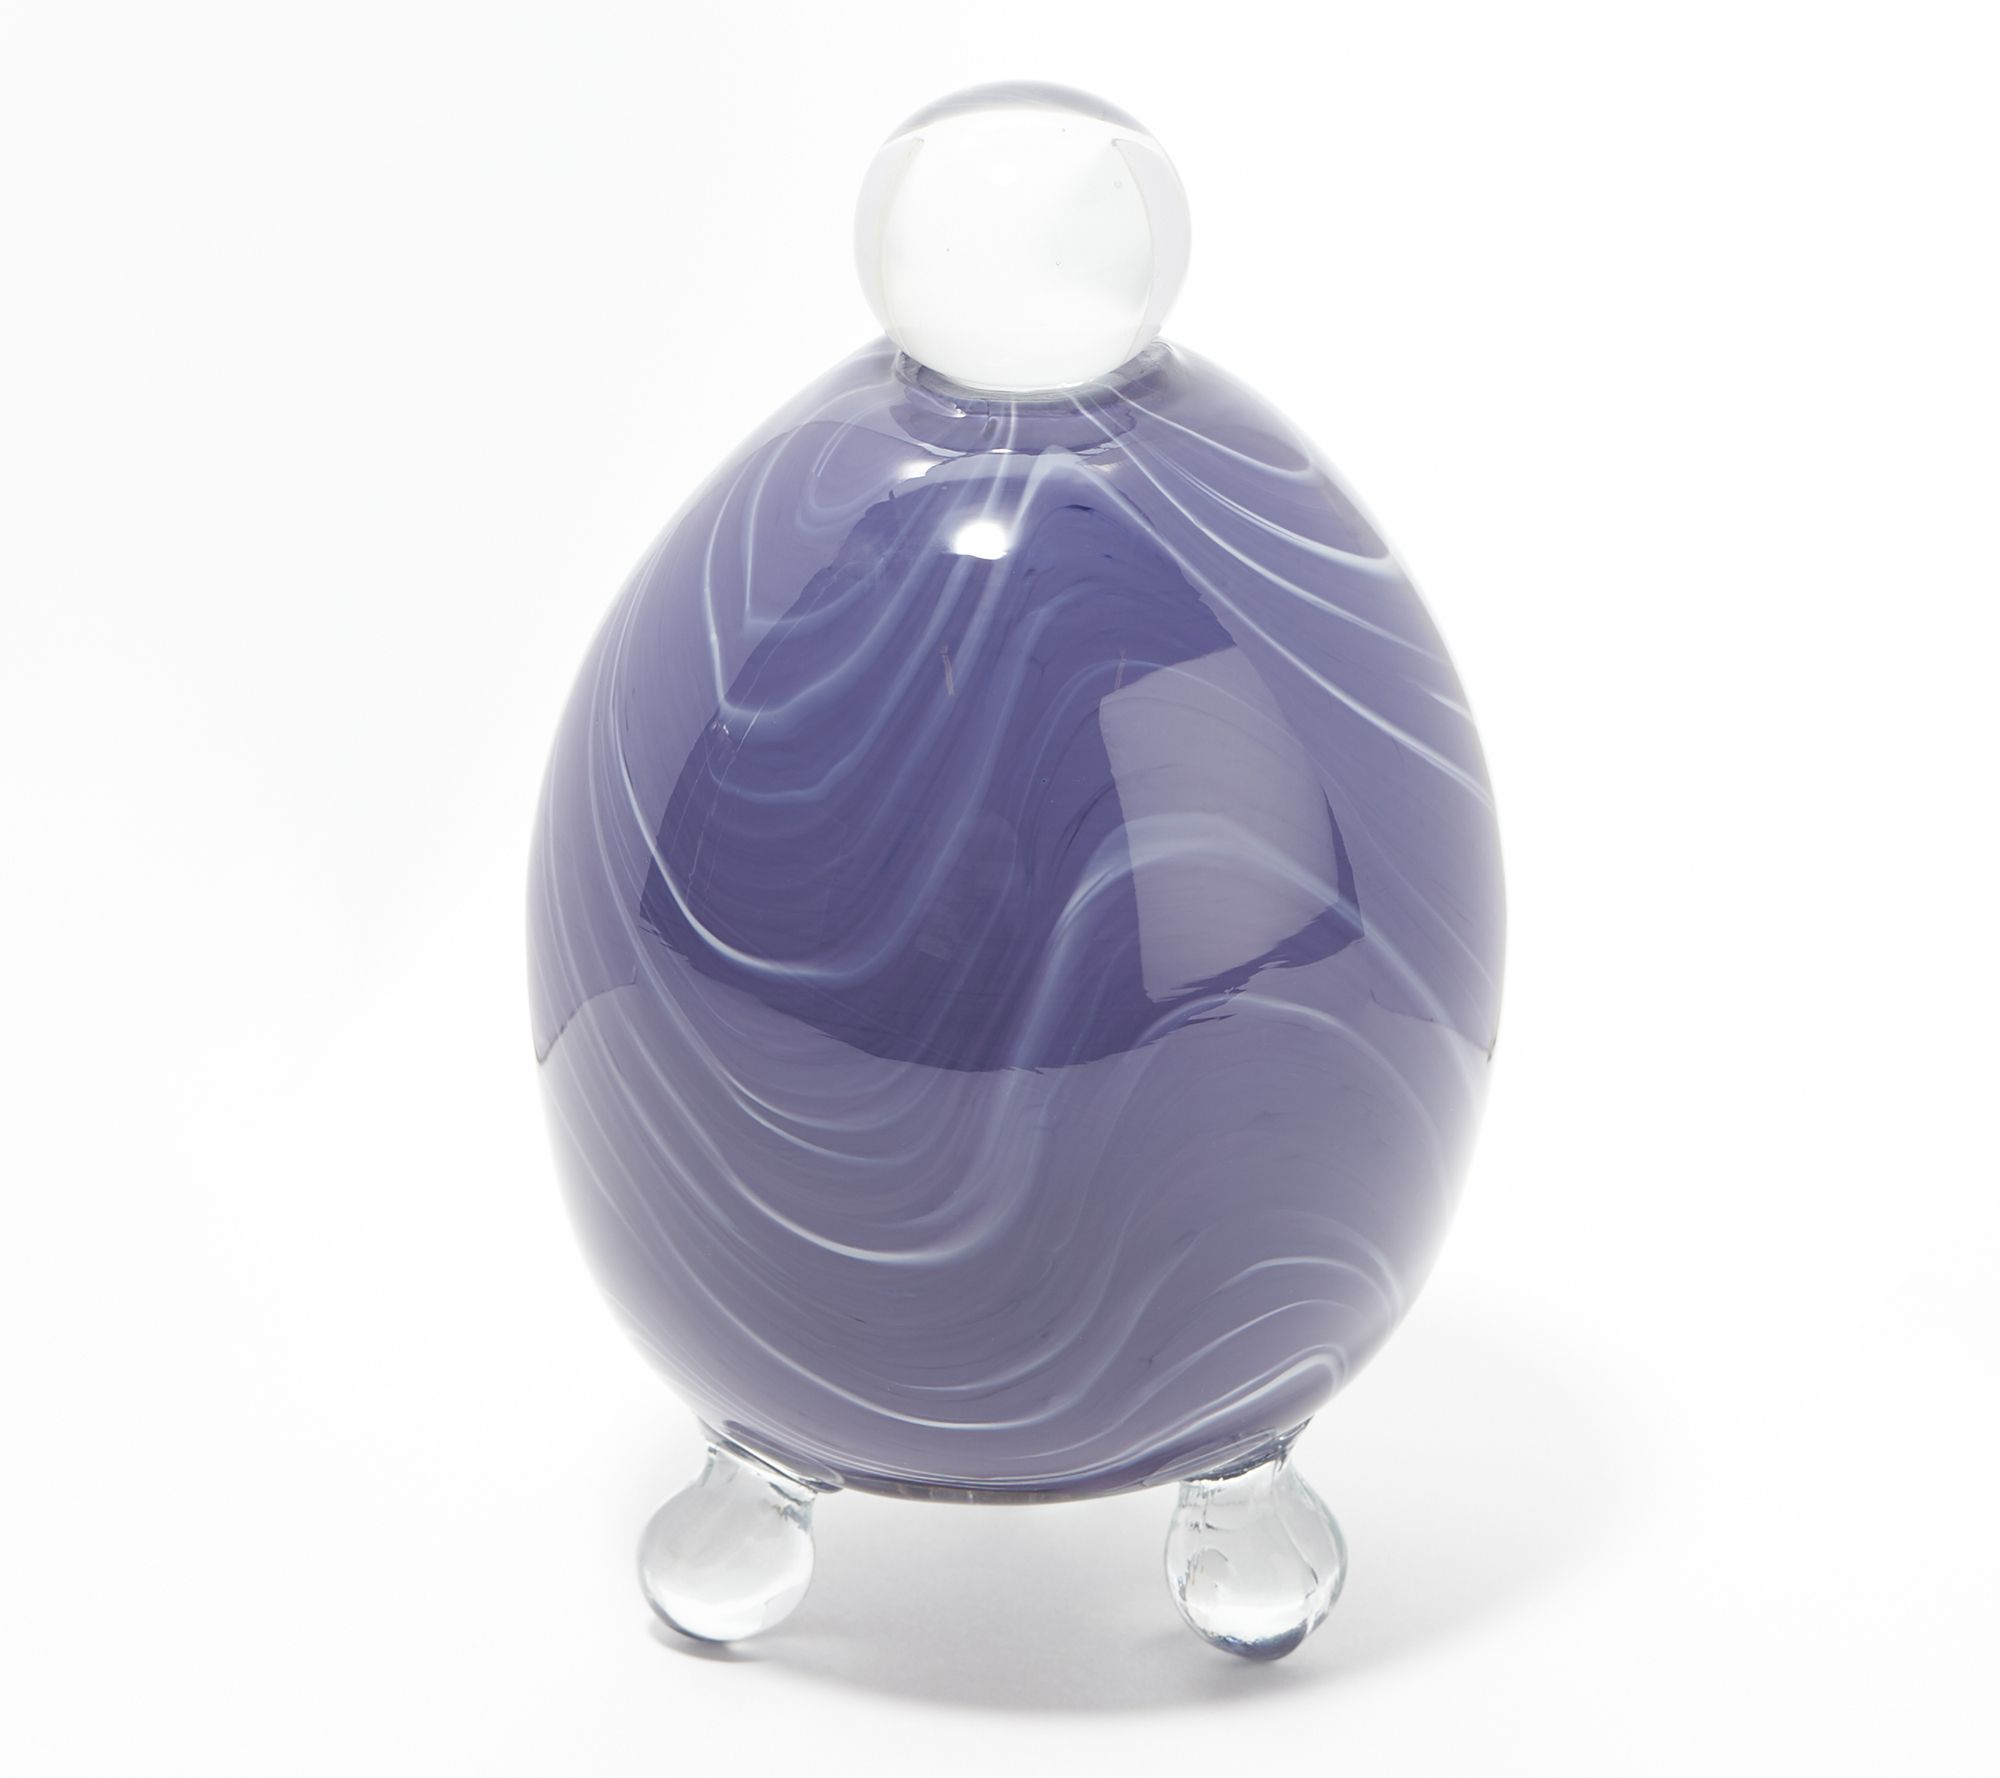 Plow & Hearth Art Glass Fruit Fly Trap - Page 1 — QVC.com